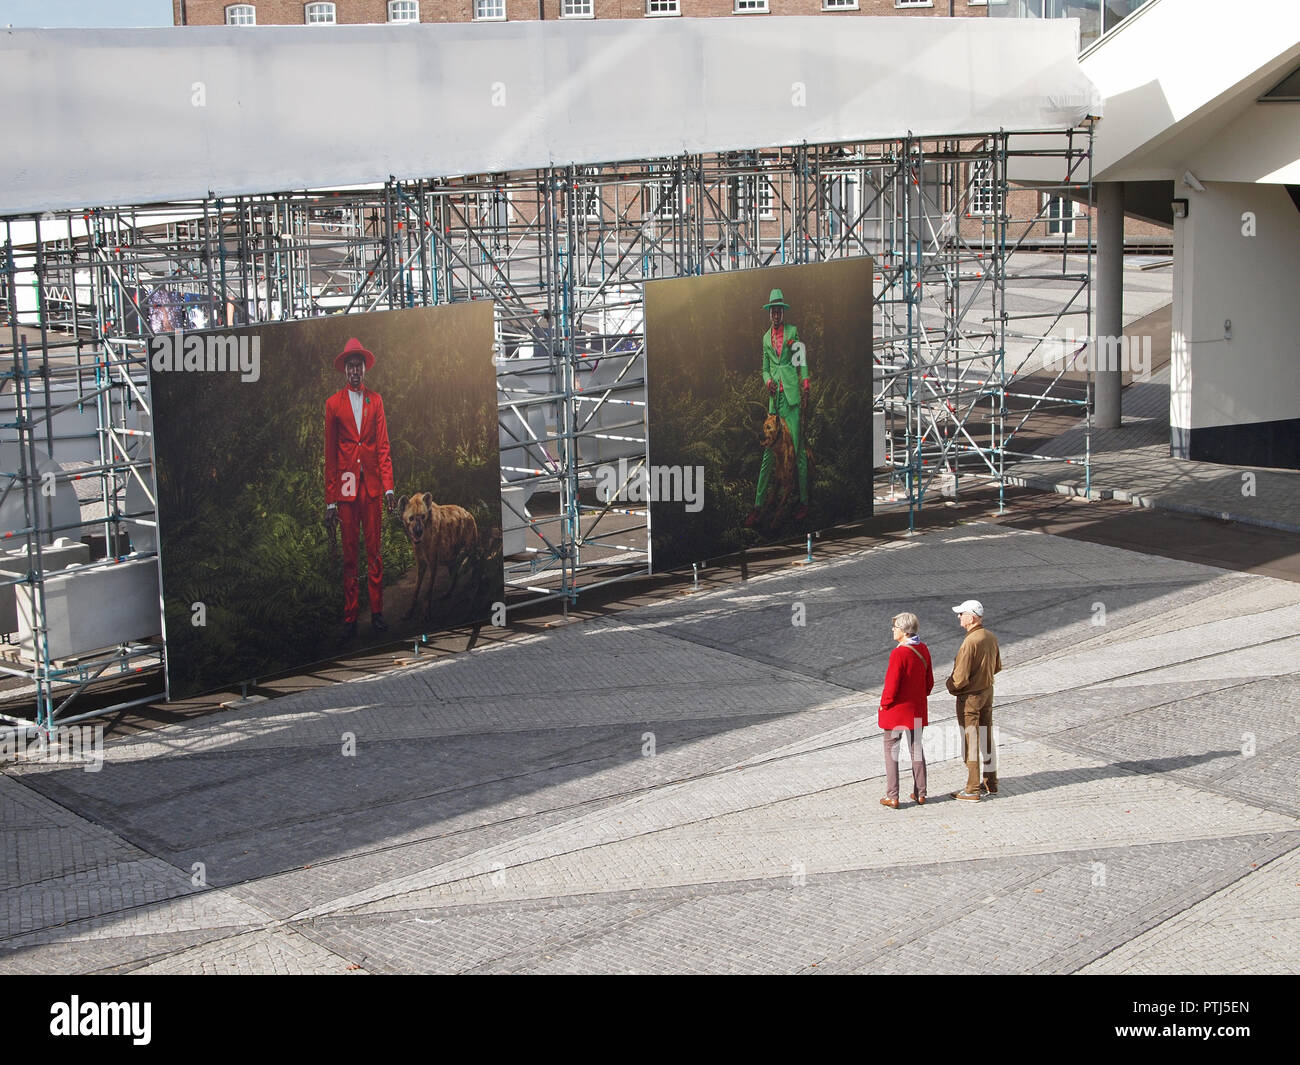 Two people enjoying contemporary photography at one of the outdoor exhibitions of Breda Photo, a bi-annual photography event in Breda, the Netherlands - Stock Image